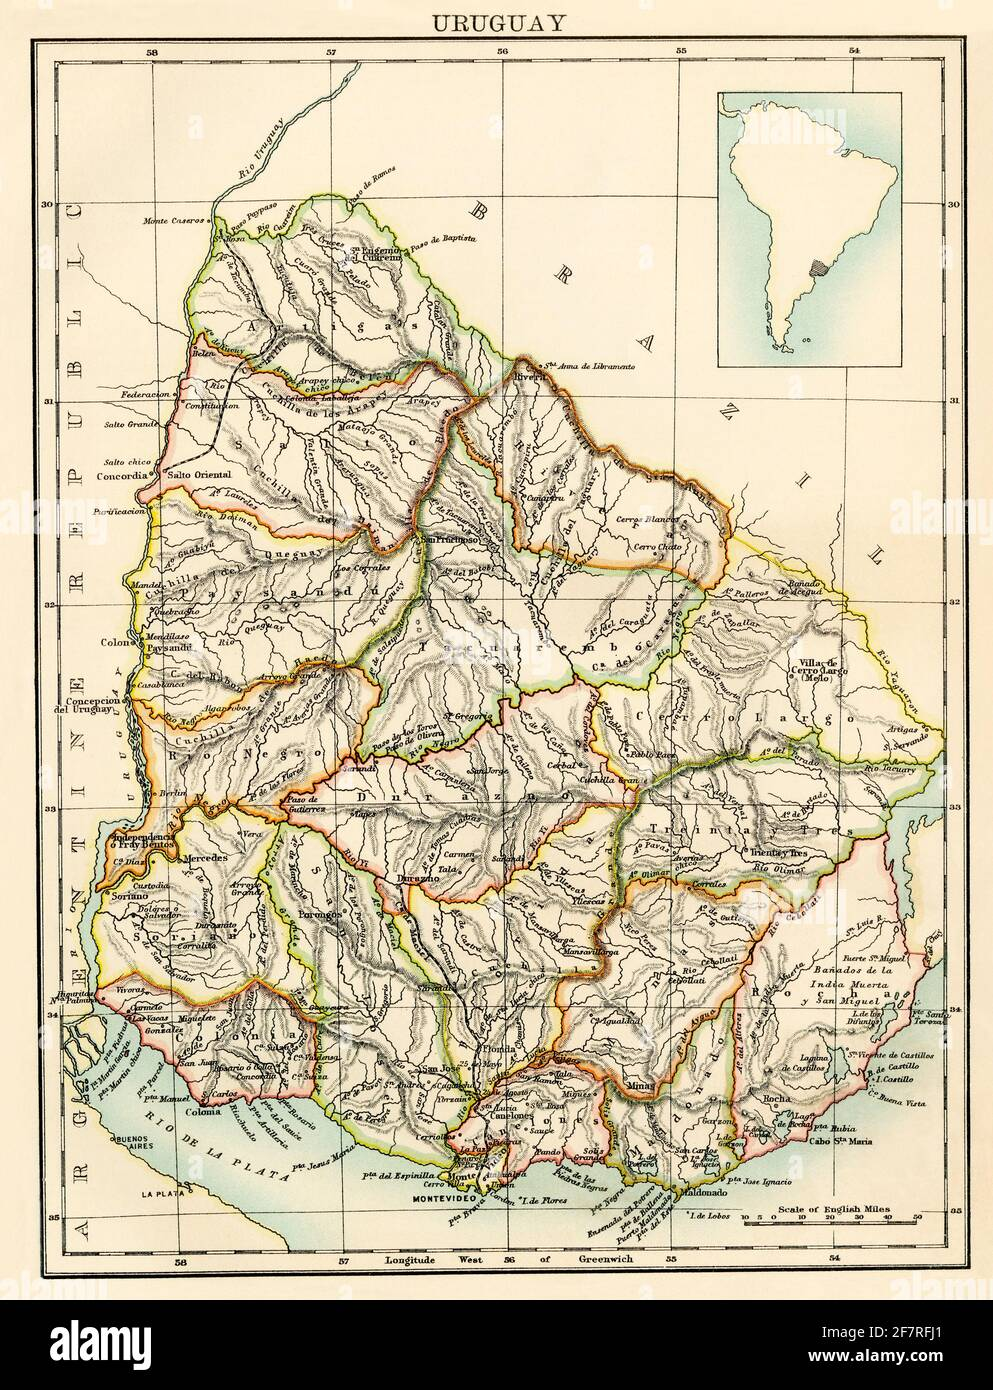 Map of Uruguay, 1870s. Color lithograph Stock Photo